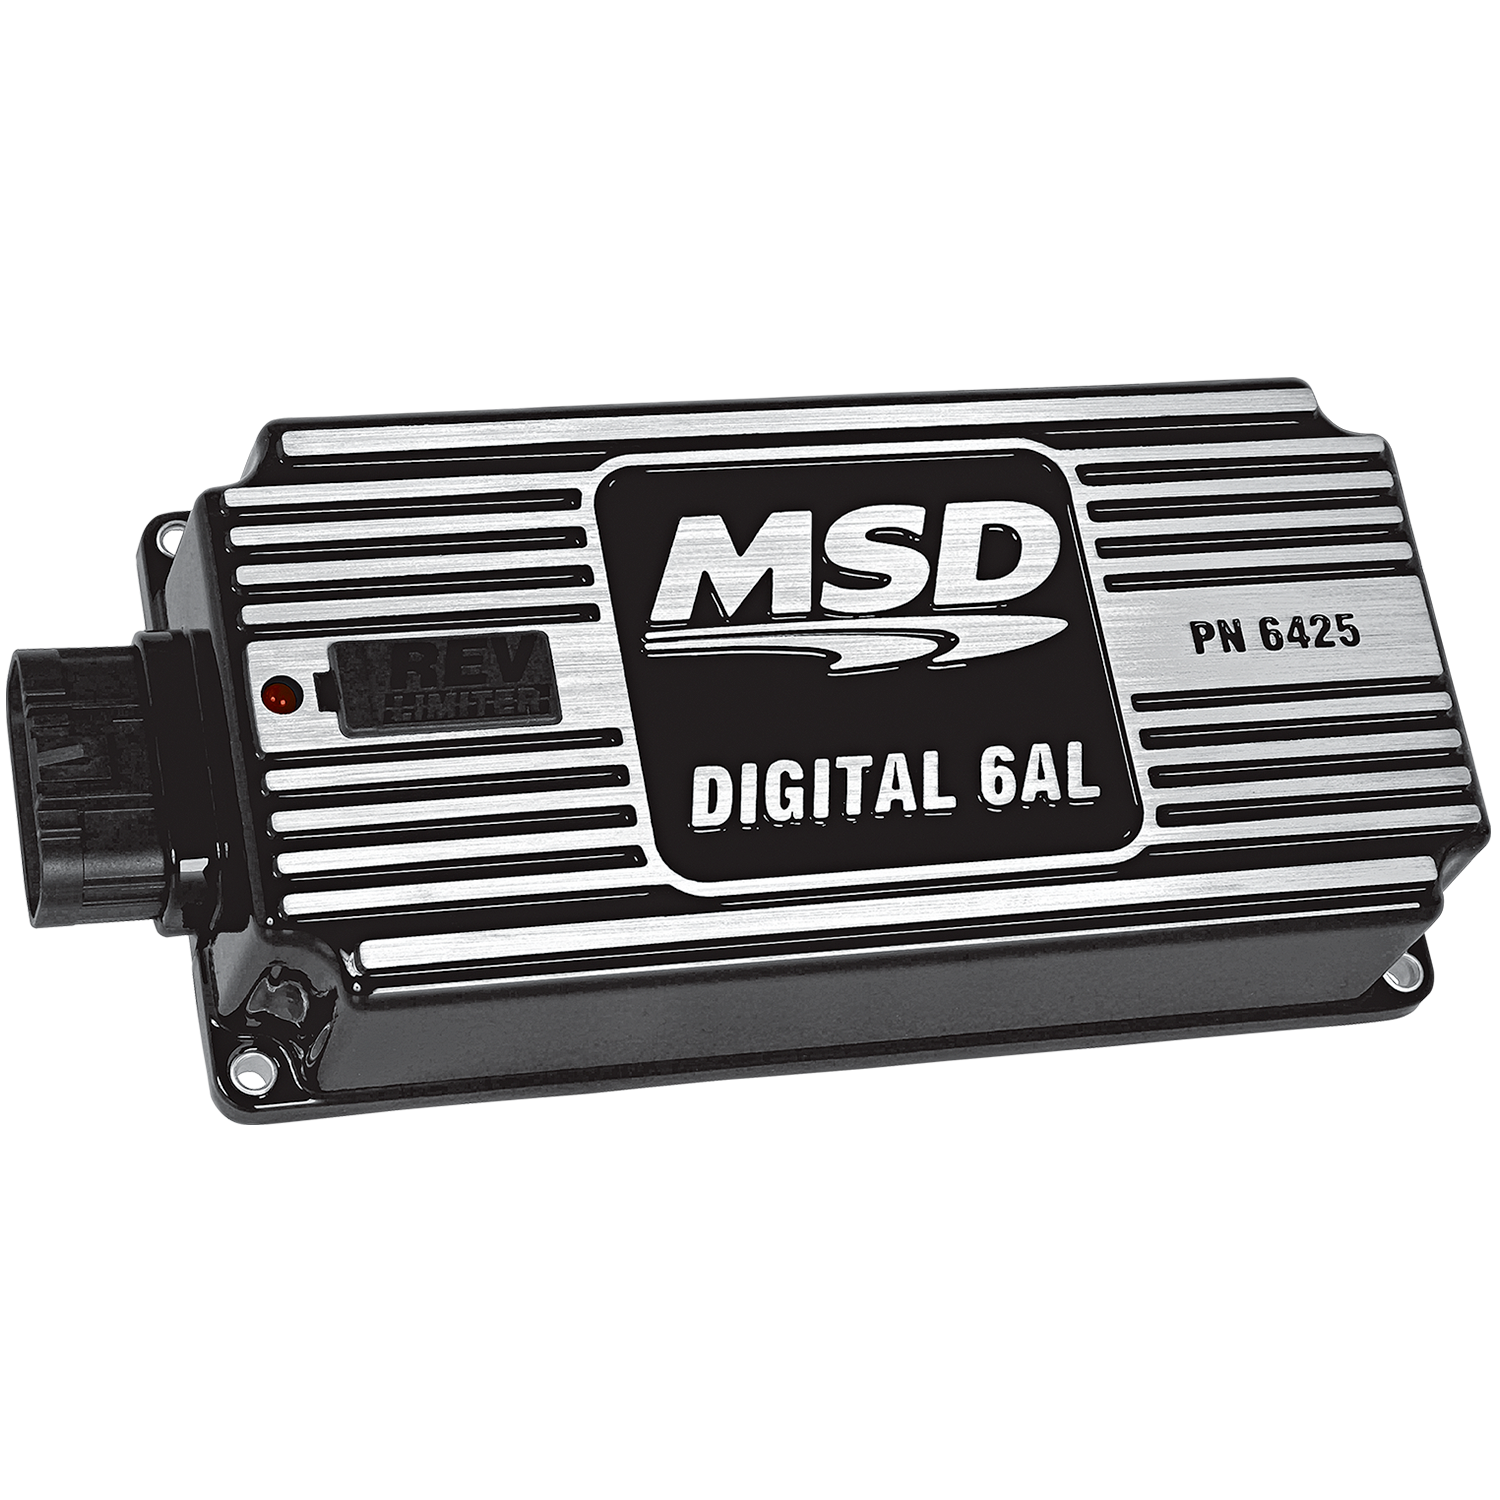 Msd 64253 Black 6al Digital Ignition W Rev Control 2wire Distributor Wiring Diagram Connected To Image